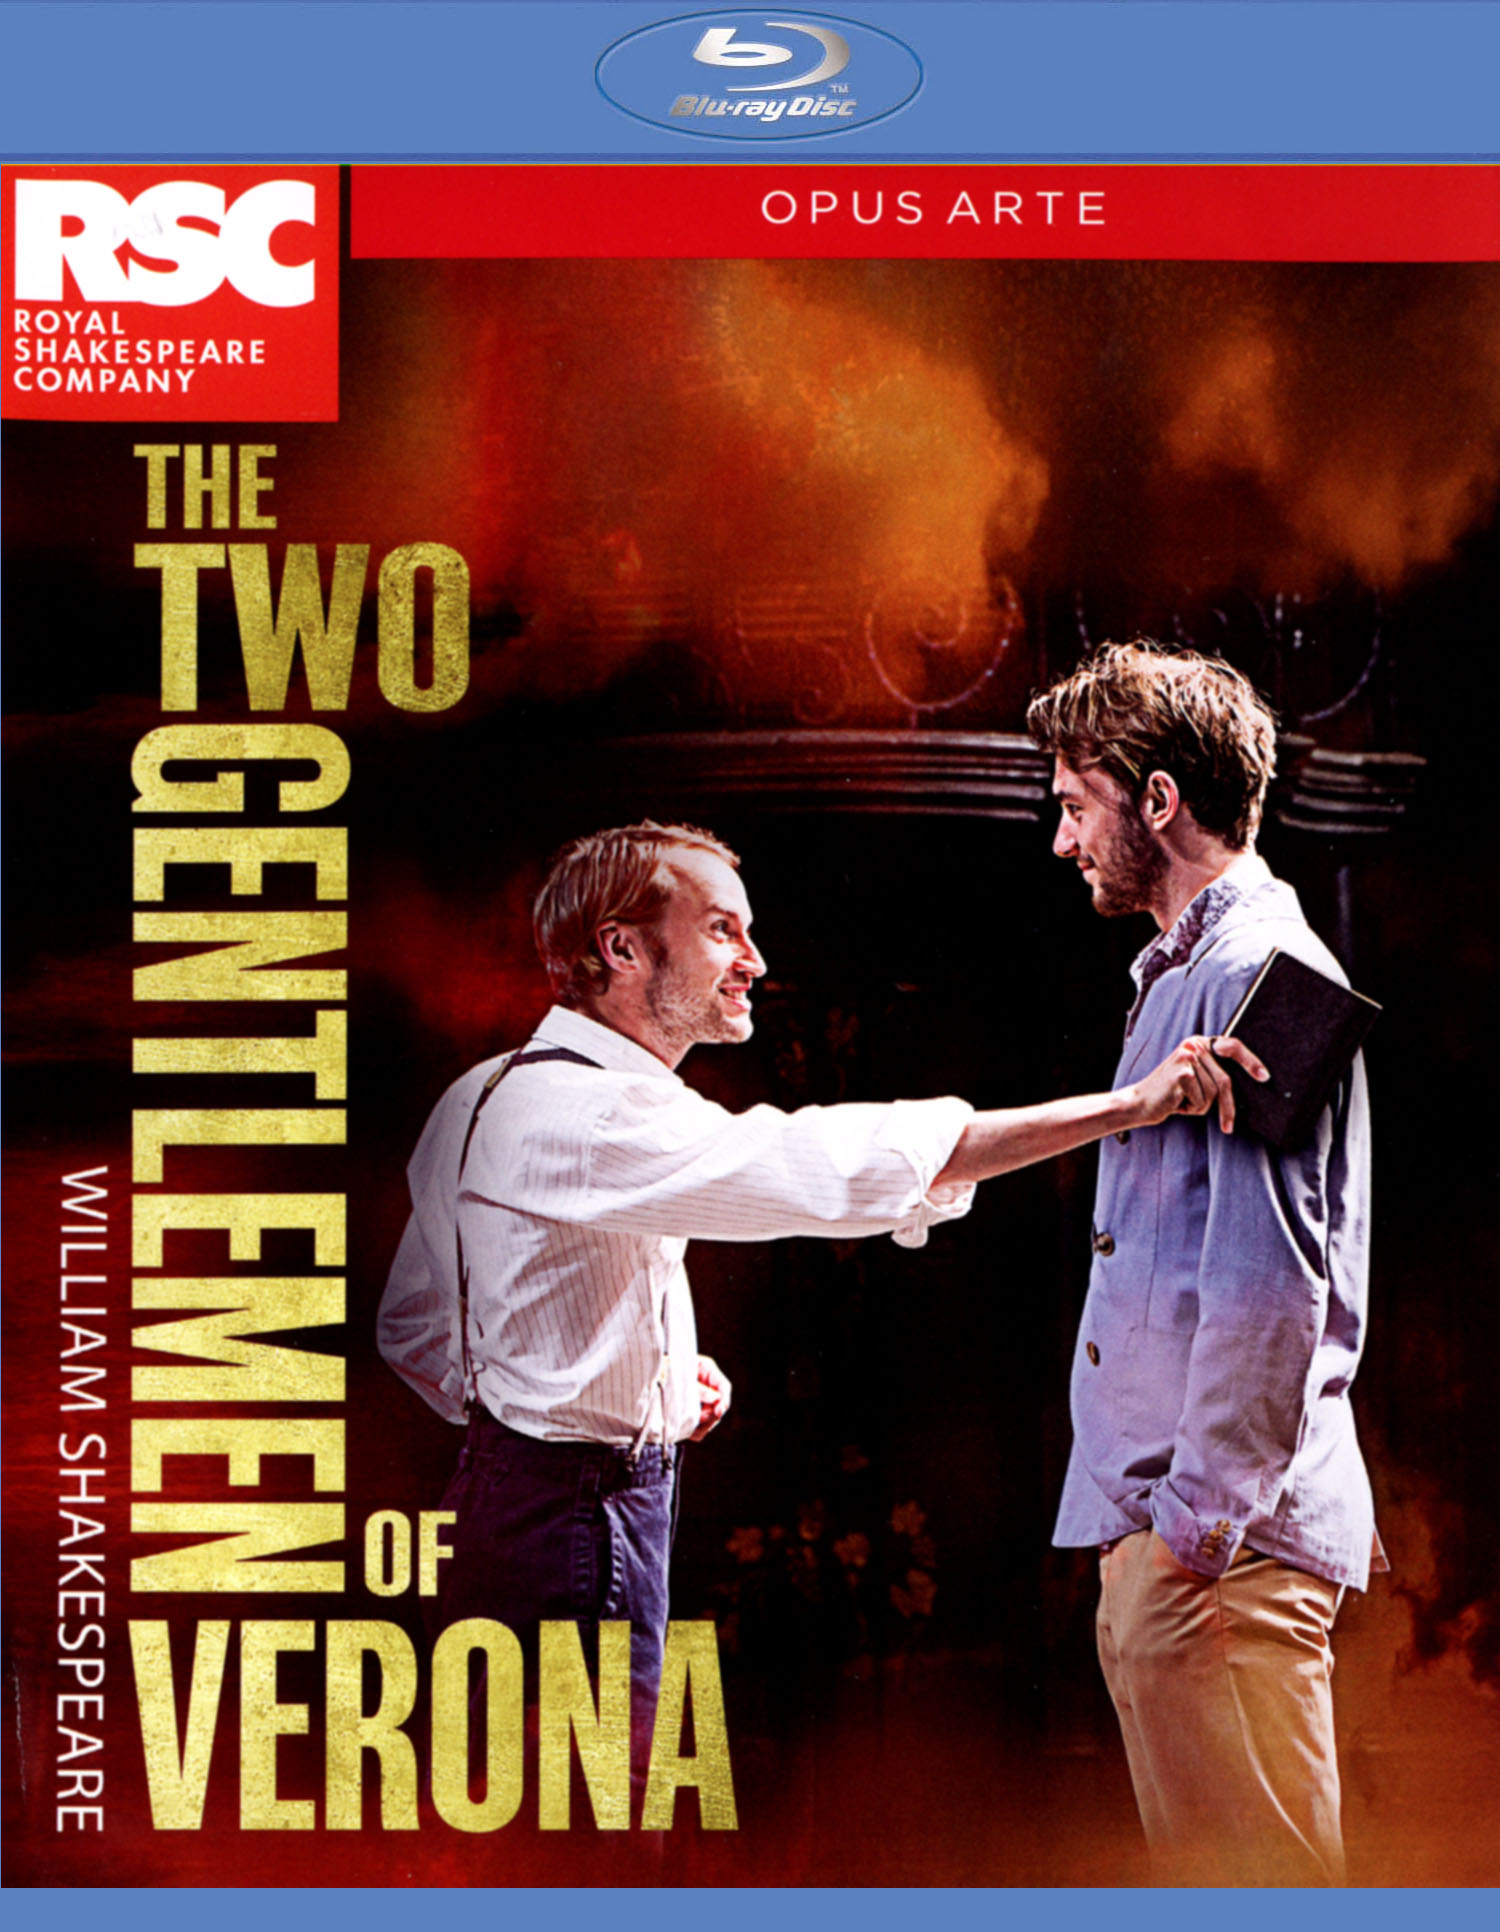 The Two Gentlemen of Verona (Royal Shakespeare Company) (2014)